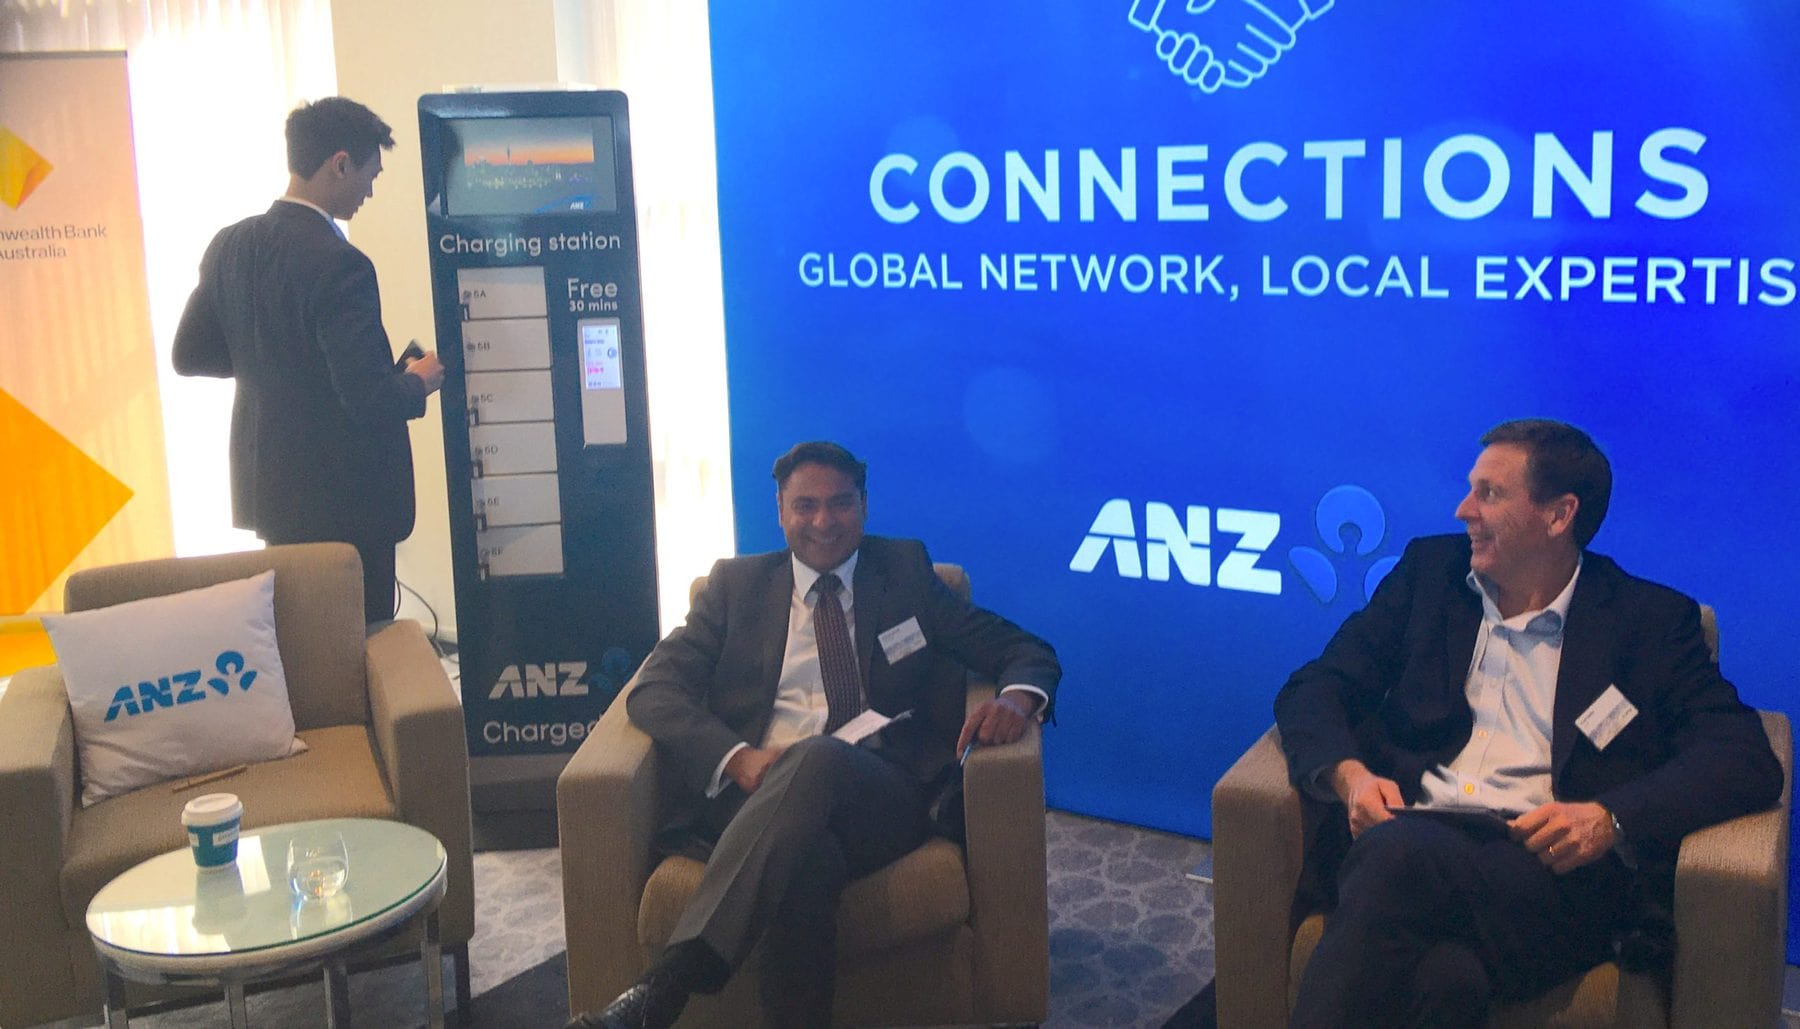 ANZ keeps summit-goers connected with secure phone charging service